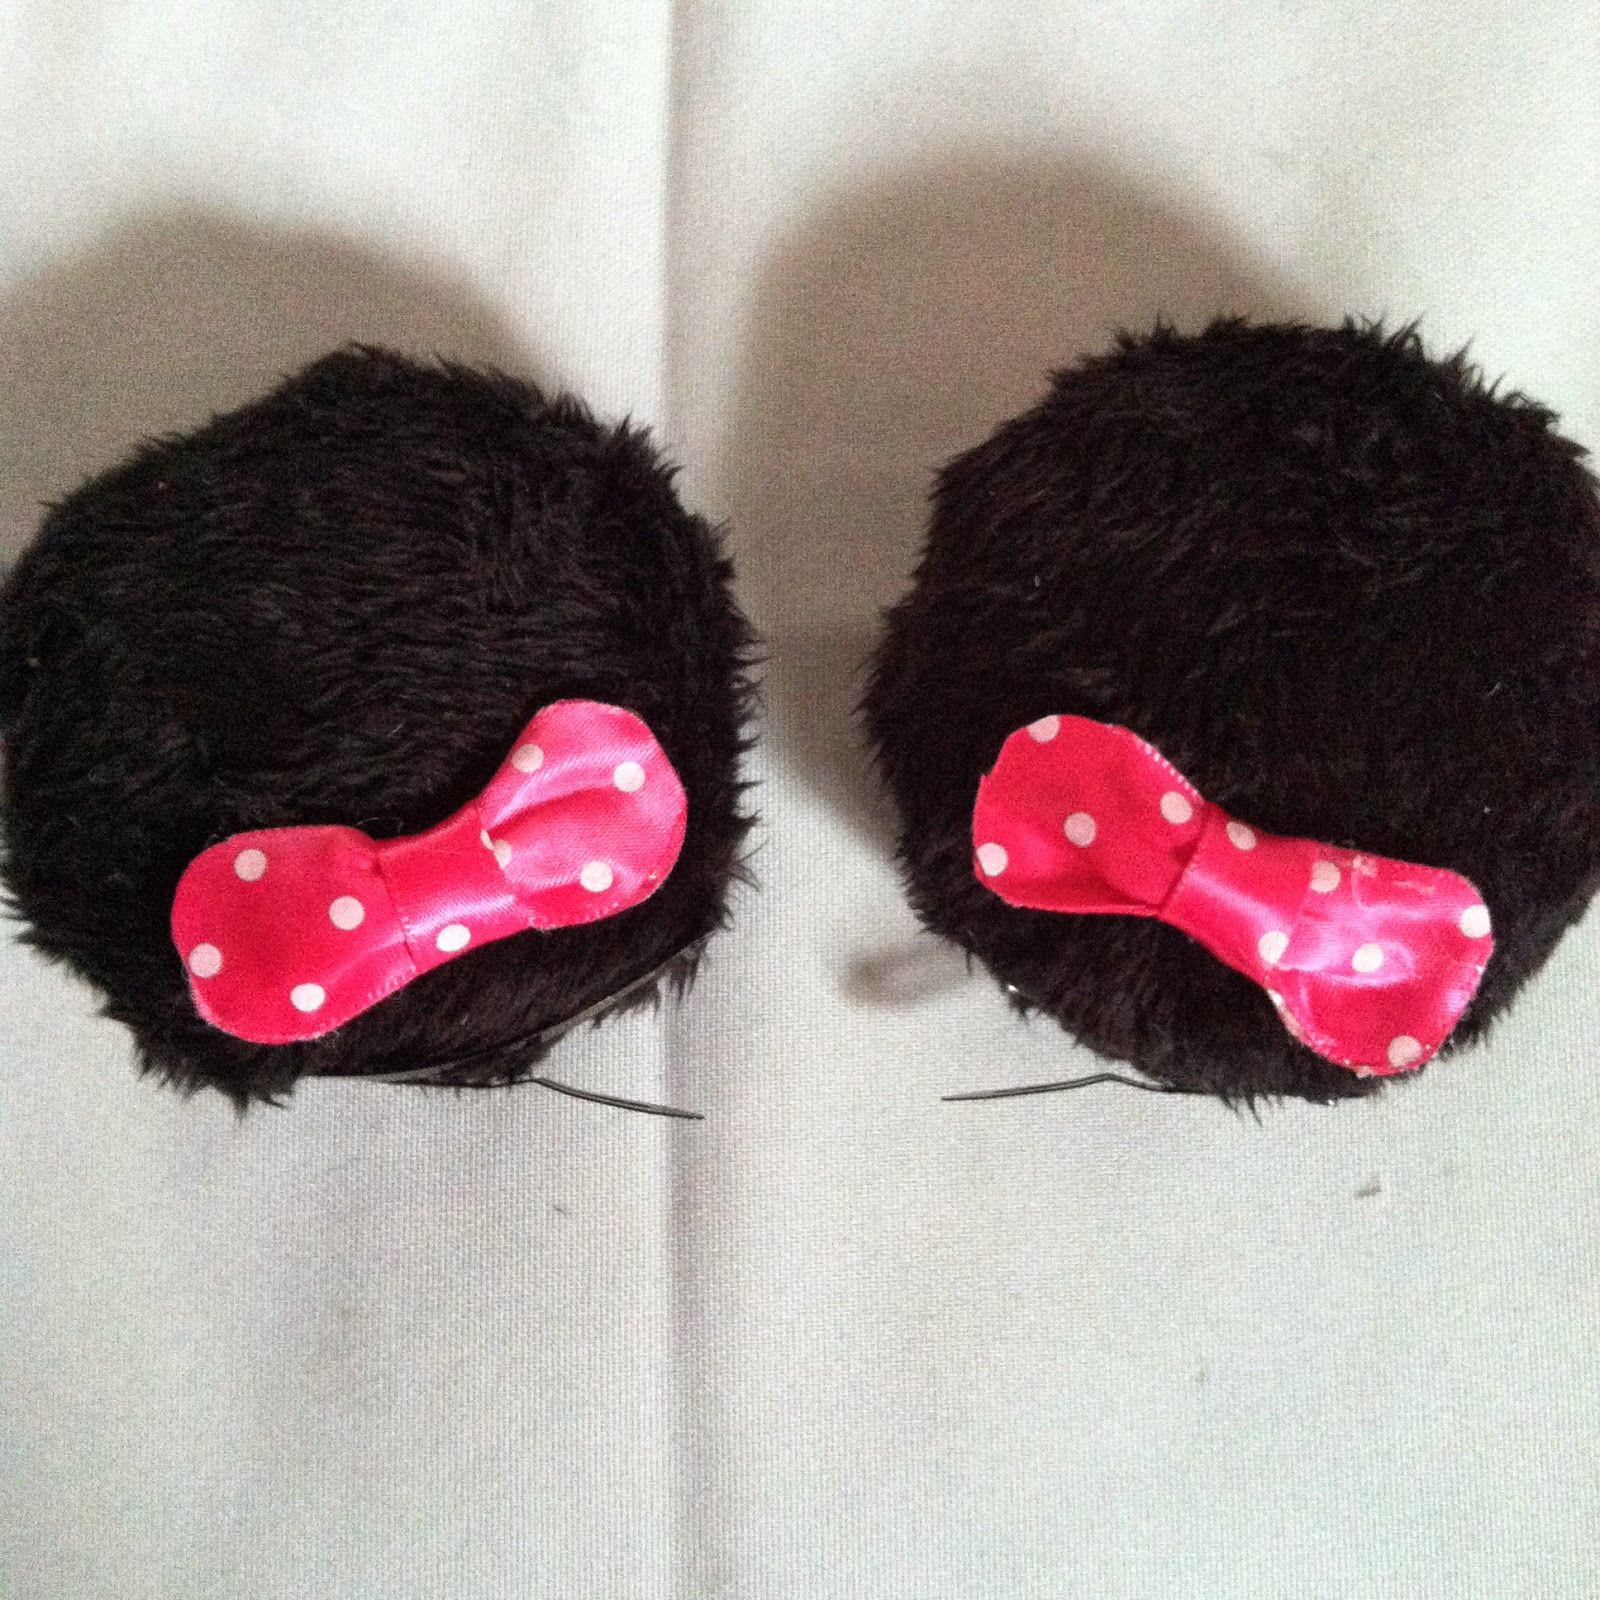 DIY Disneyland Minnie Mouse Clip in Ears